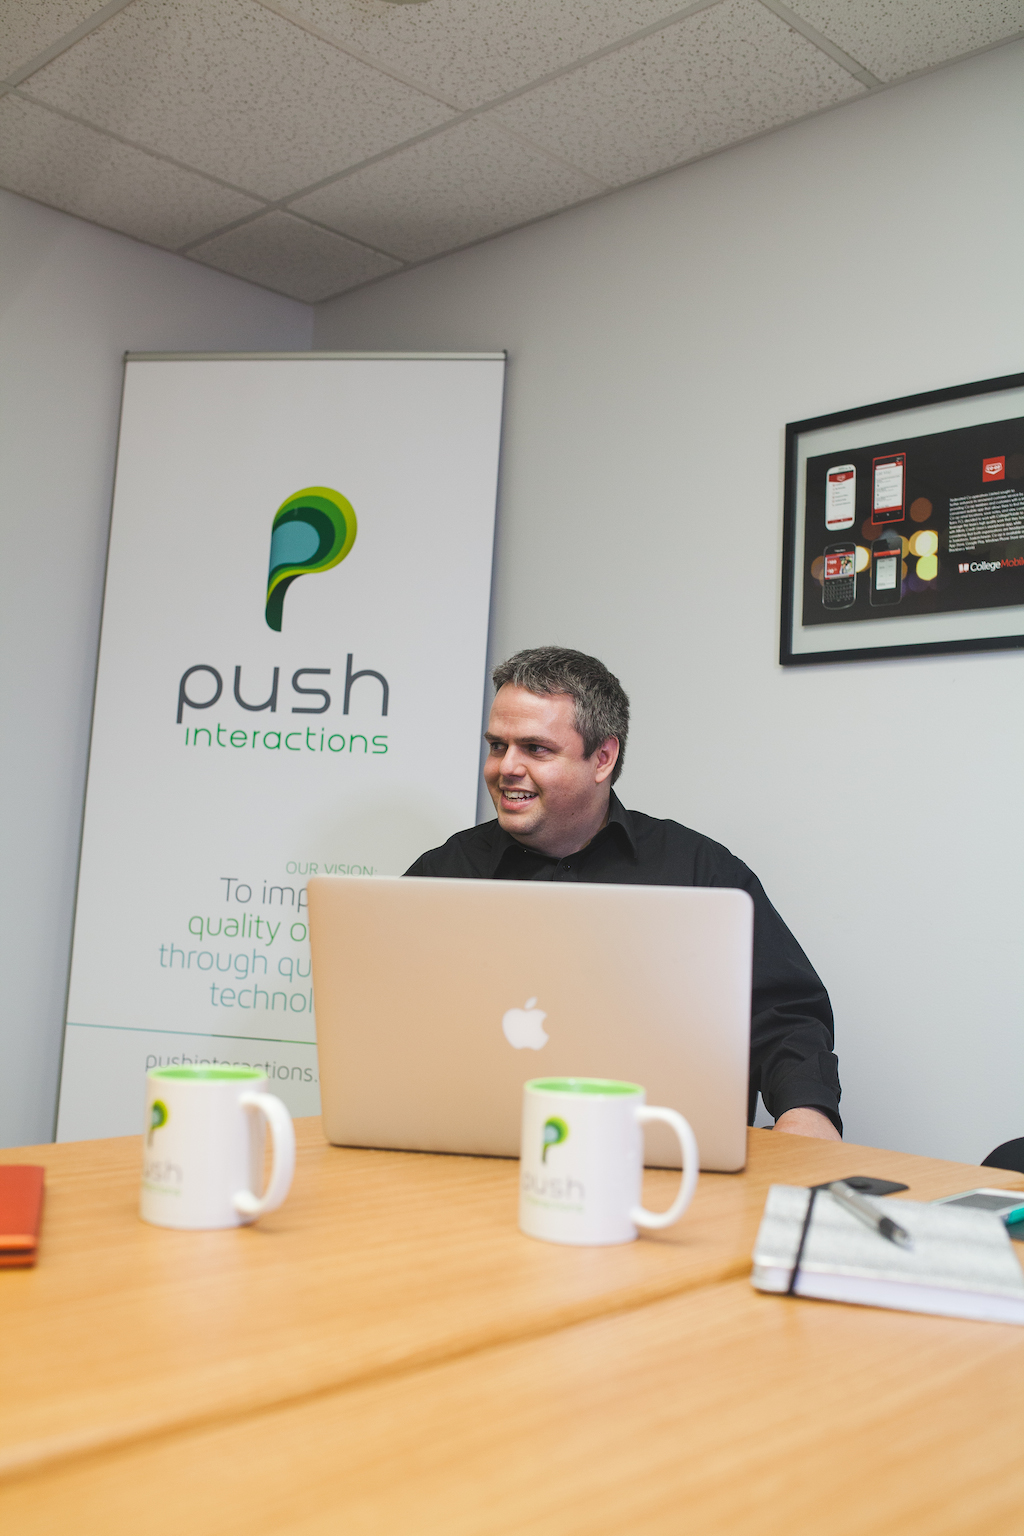 Meet Our Team - Chad Jones -Push Interactions Founder and CEO